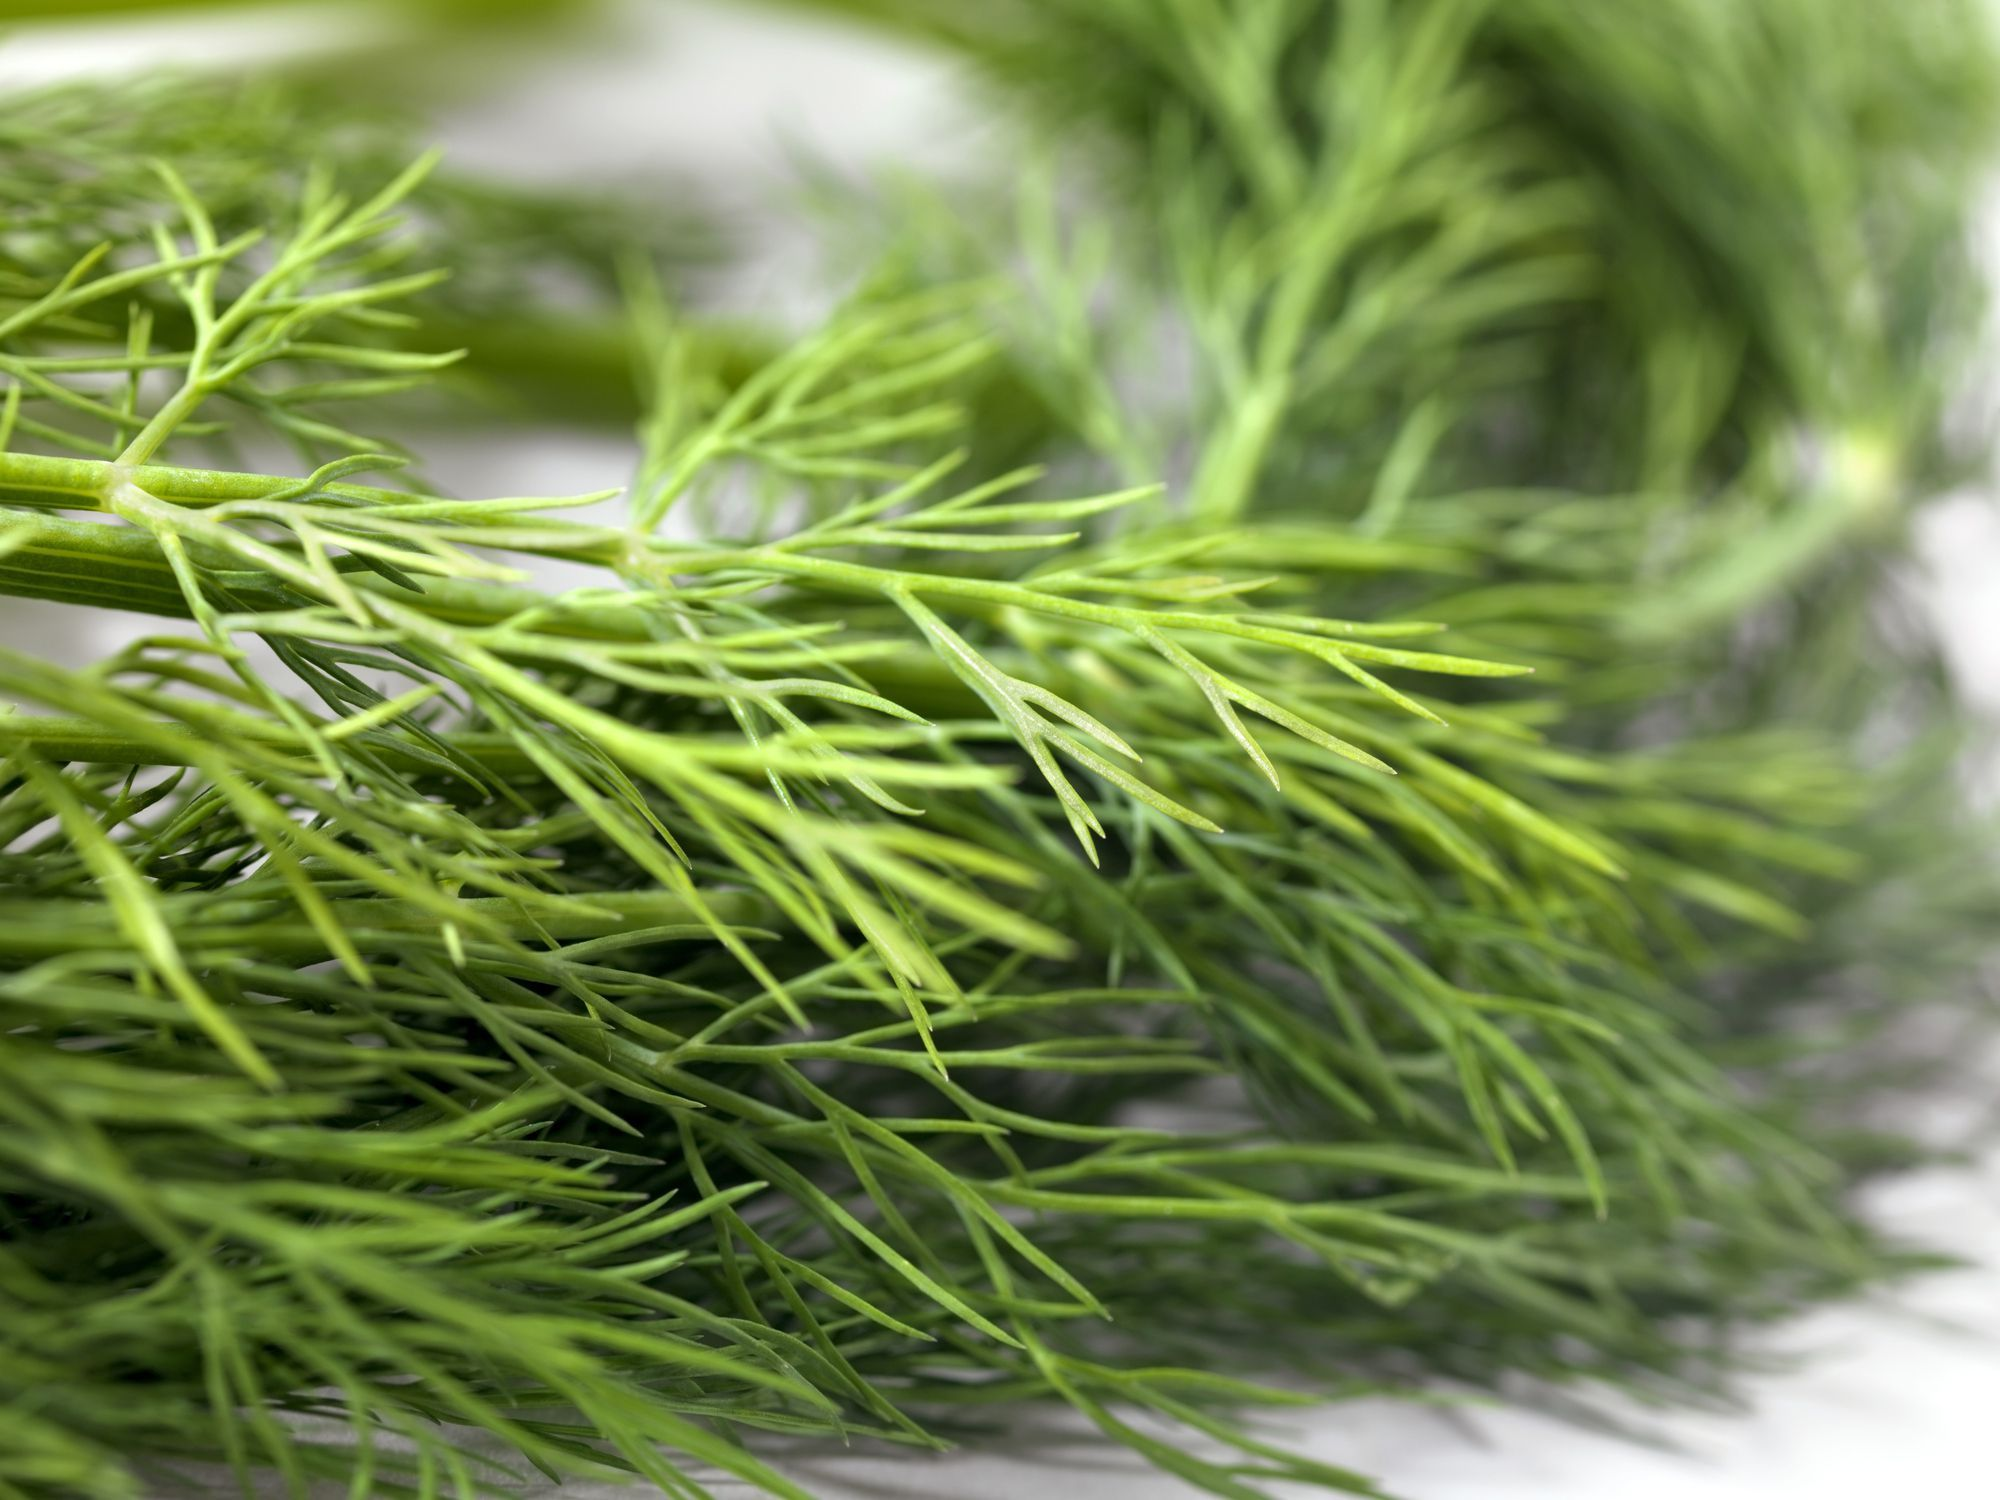 Deluxe Dill Seed Recipe Pinterest Dill Substitute Dill On Salmon Dill Pickles Substitute Find Substitutes Learn How To Substitutedried Dill Substitutes Dill Weed Dill Seed Dill